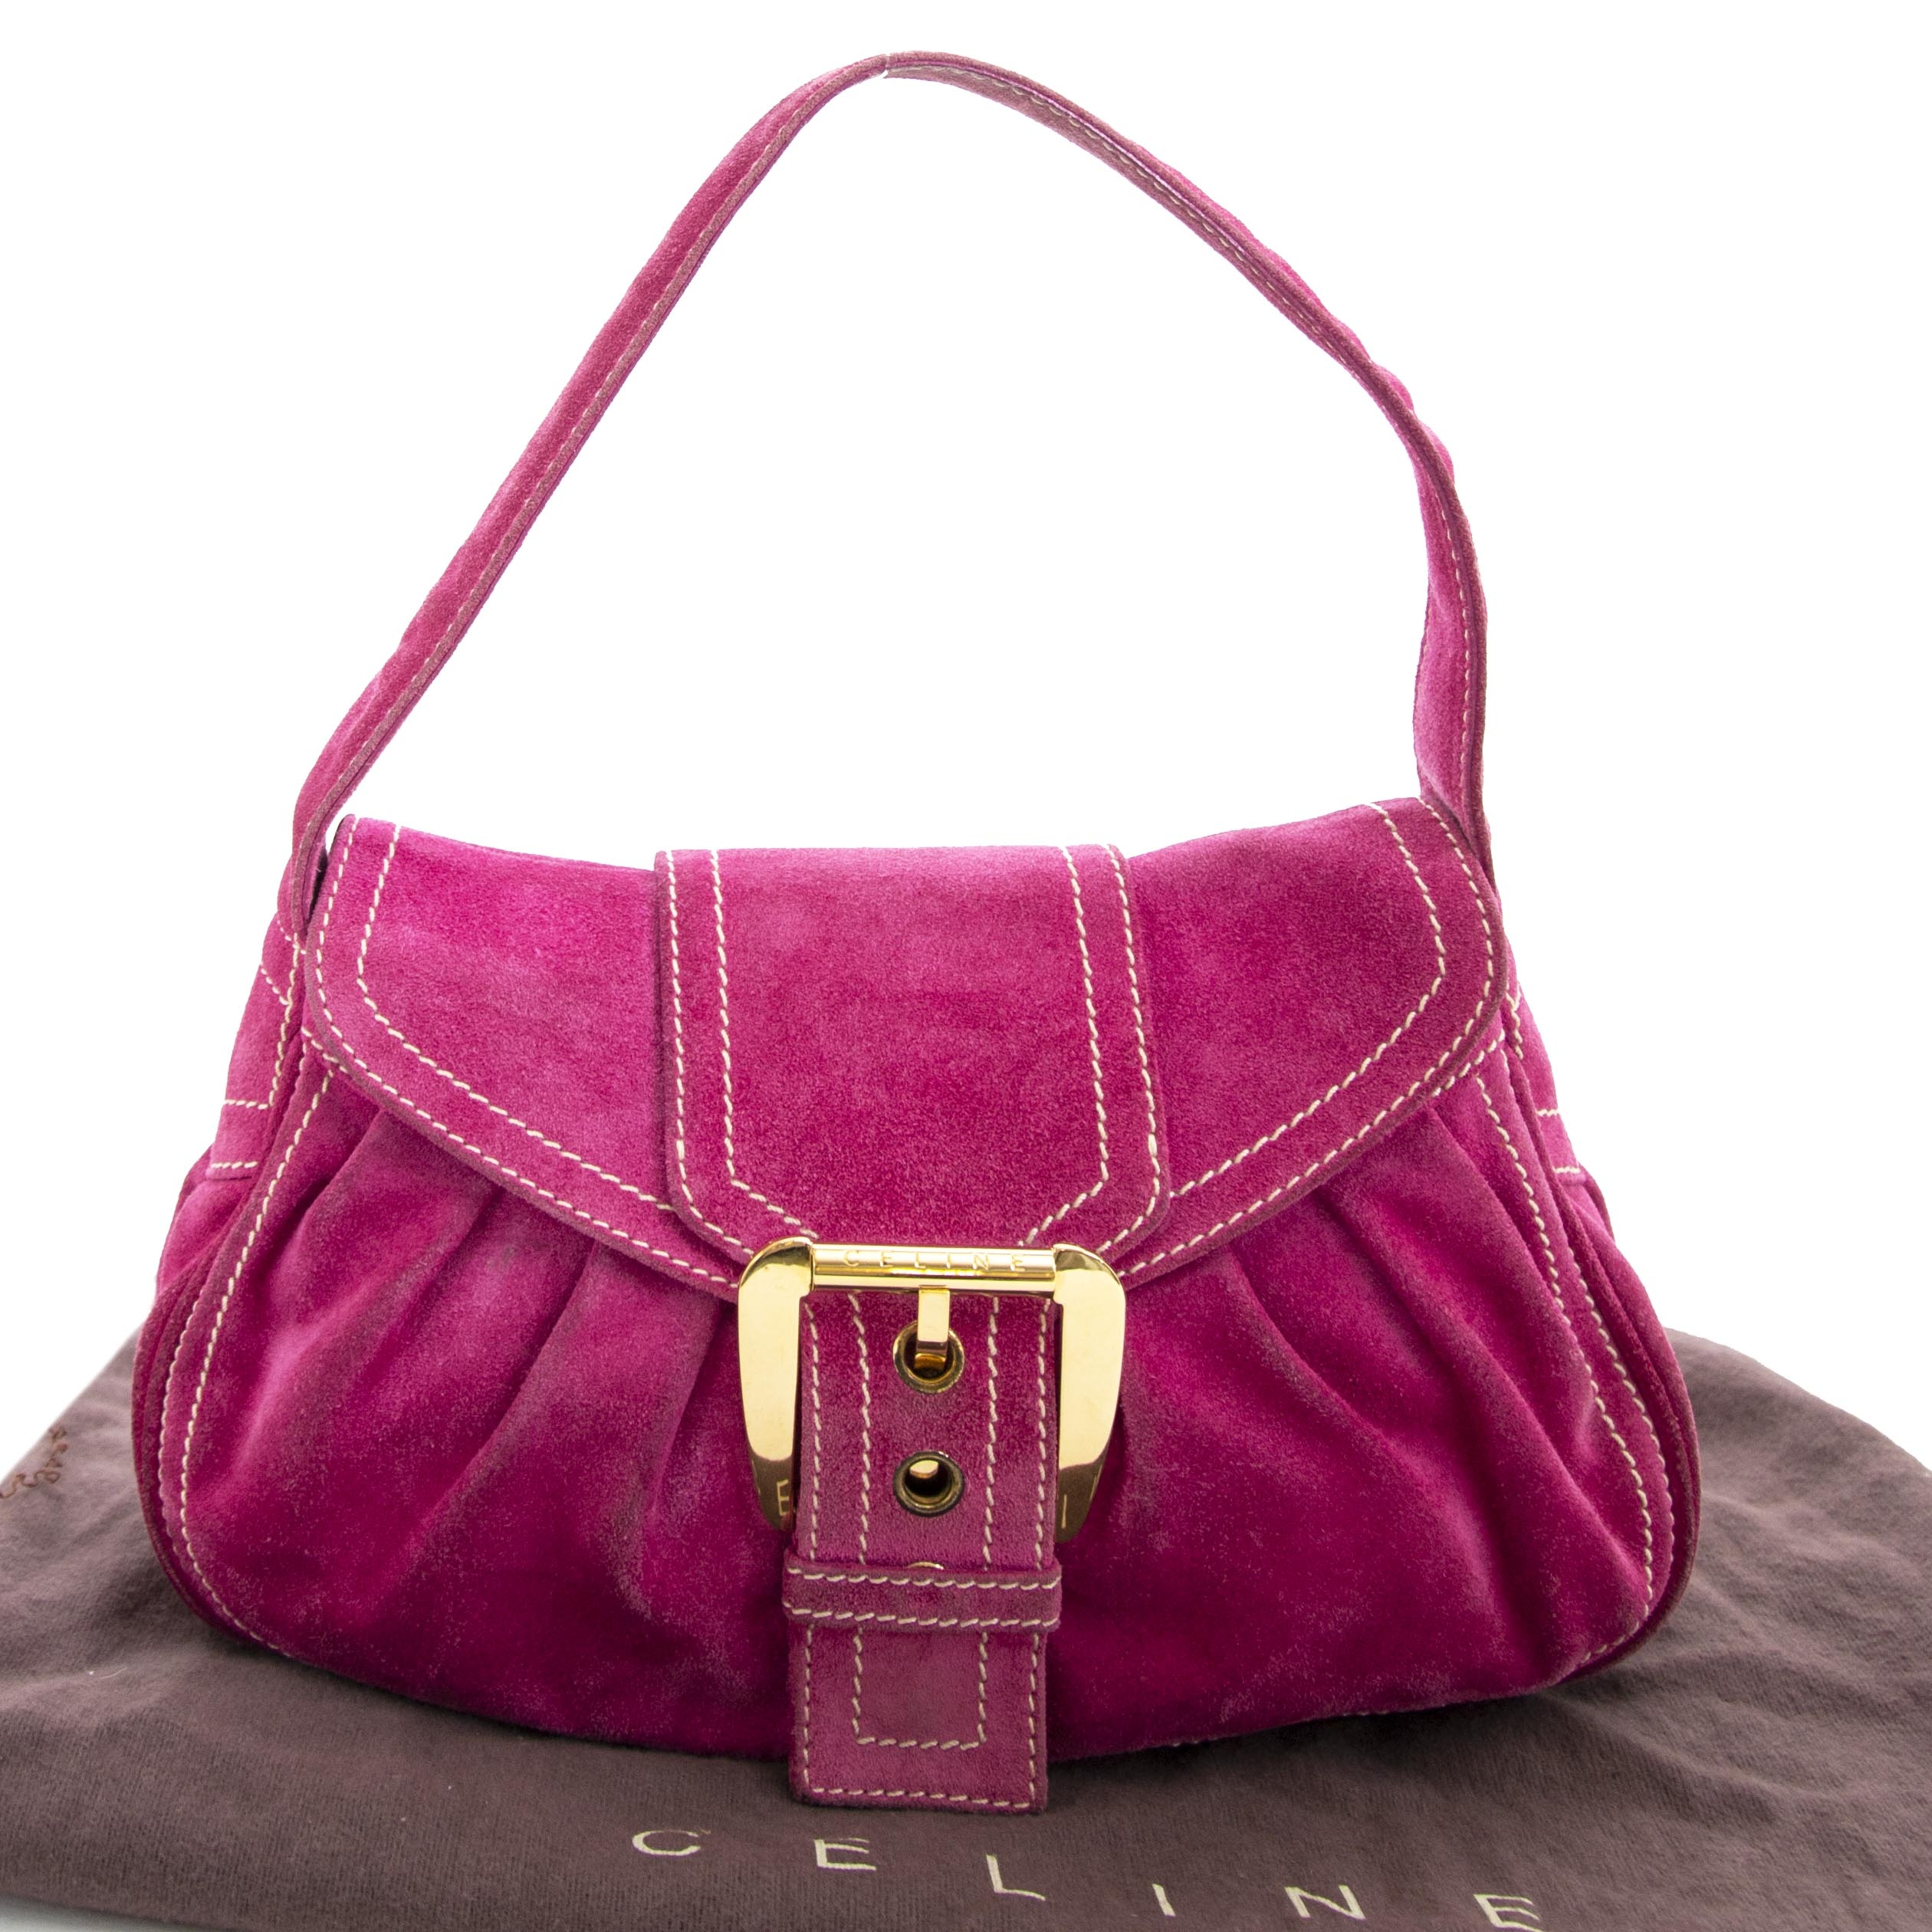 Buy and sell secondhand preloved luxury online at Labellov timeless designer bags